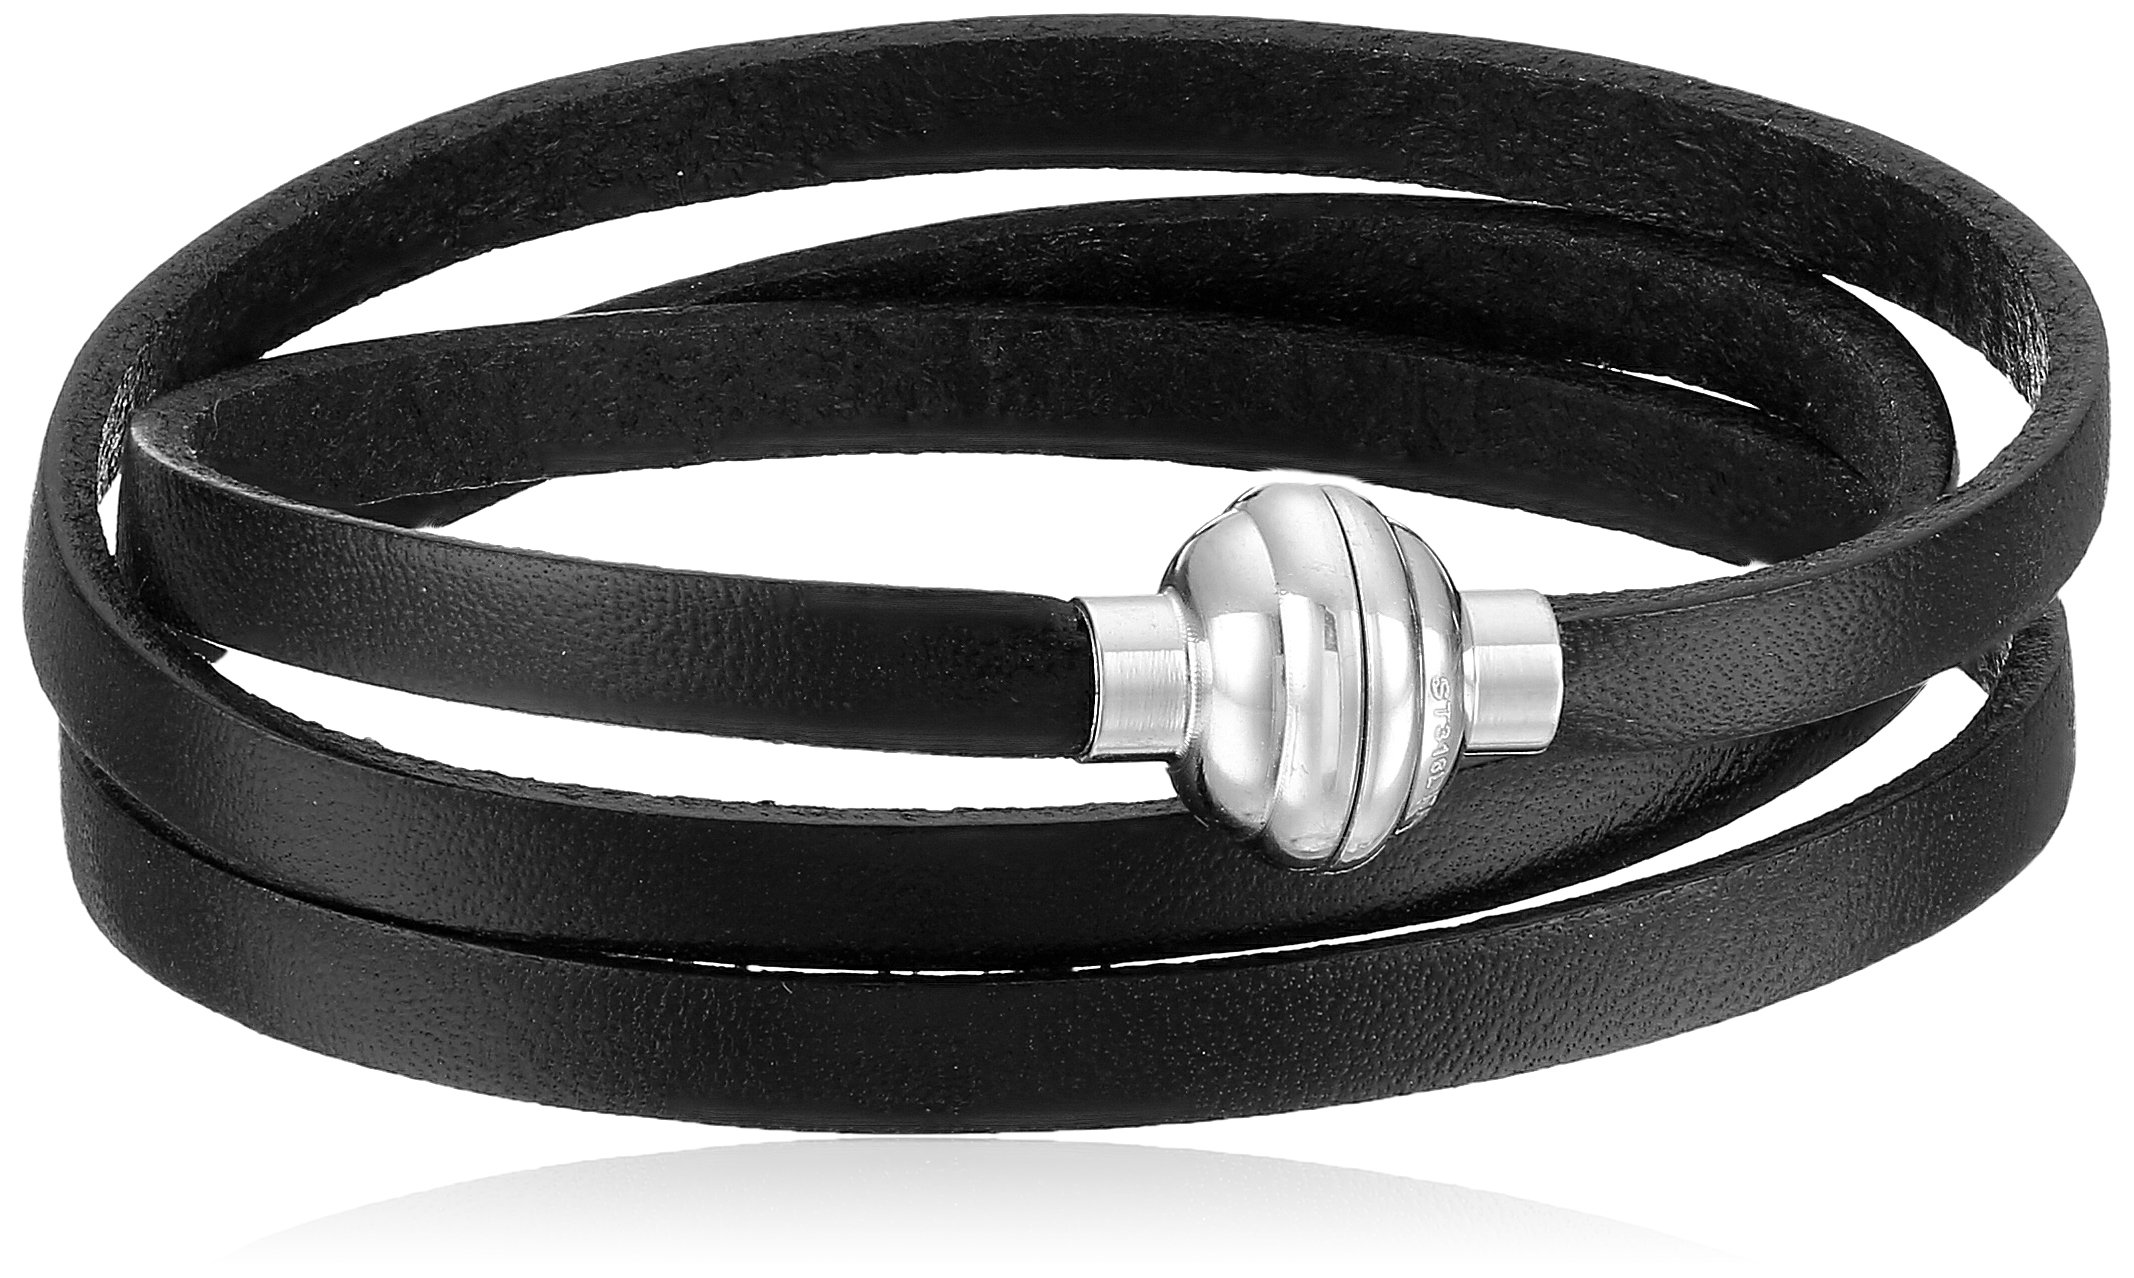 Black Leather Wrap Stainless Steel Magnetic Clasp Bracelet, 22.5''